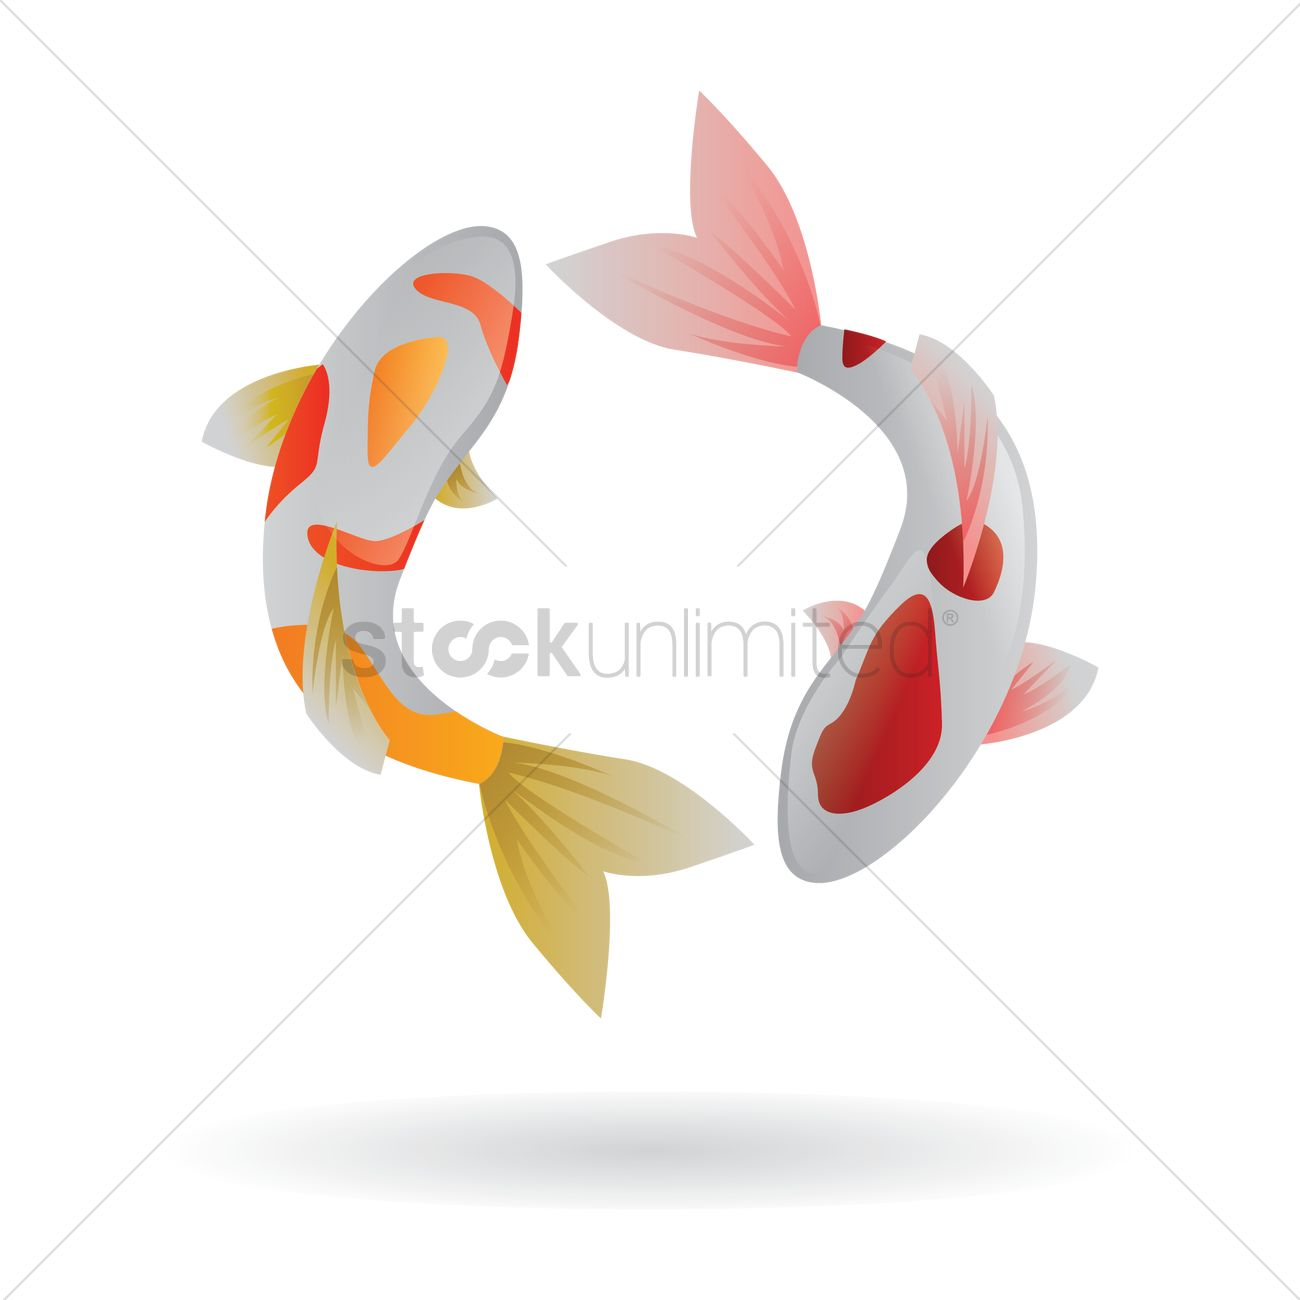 Chinese new year fish greeting card design Vector Image - 1408284 ...